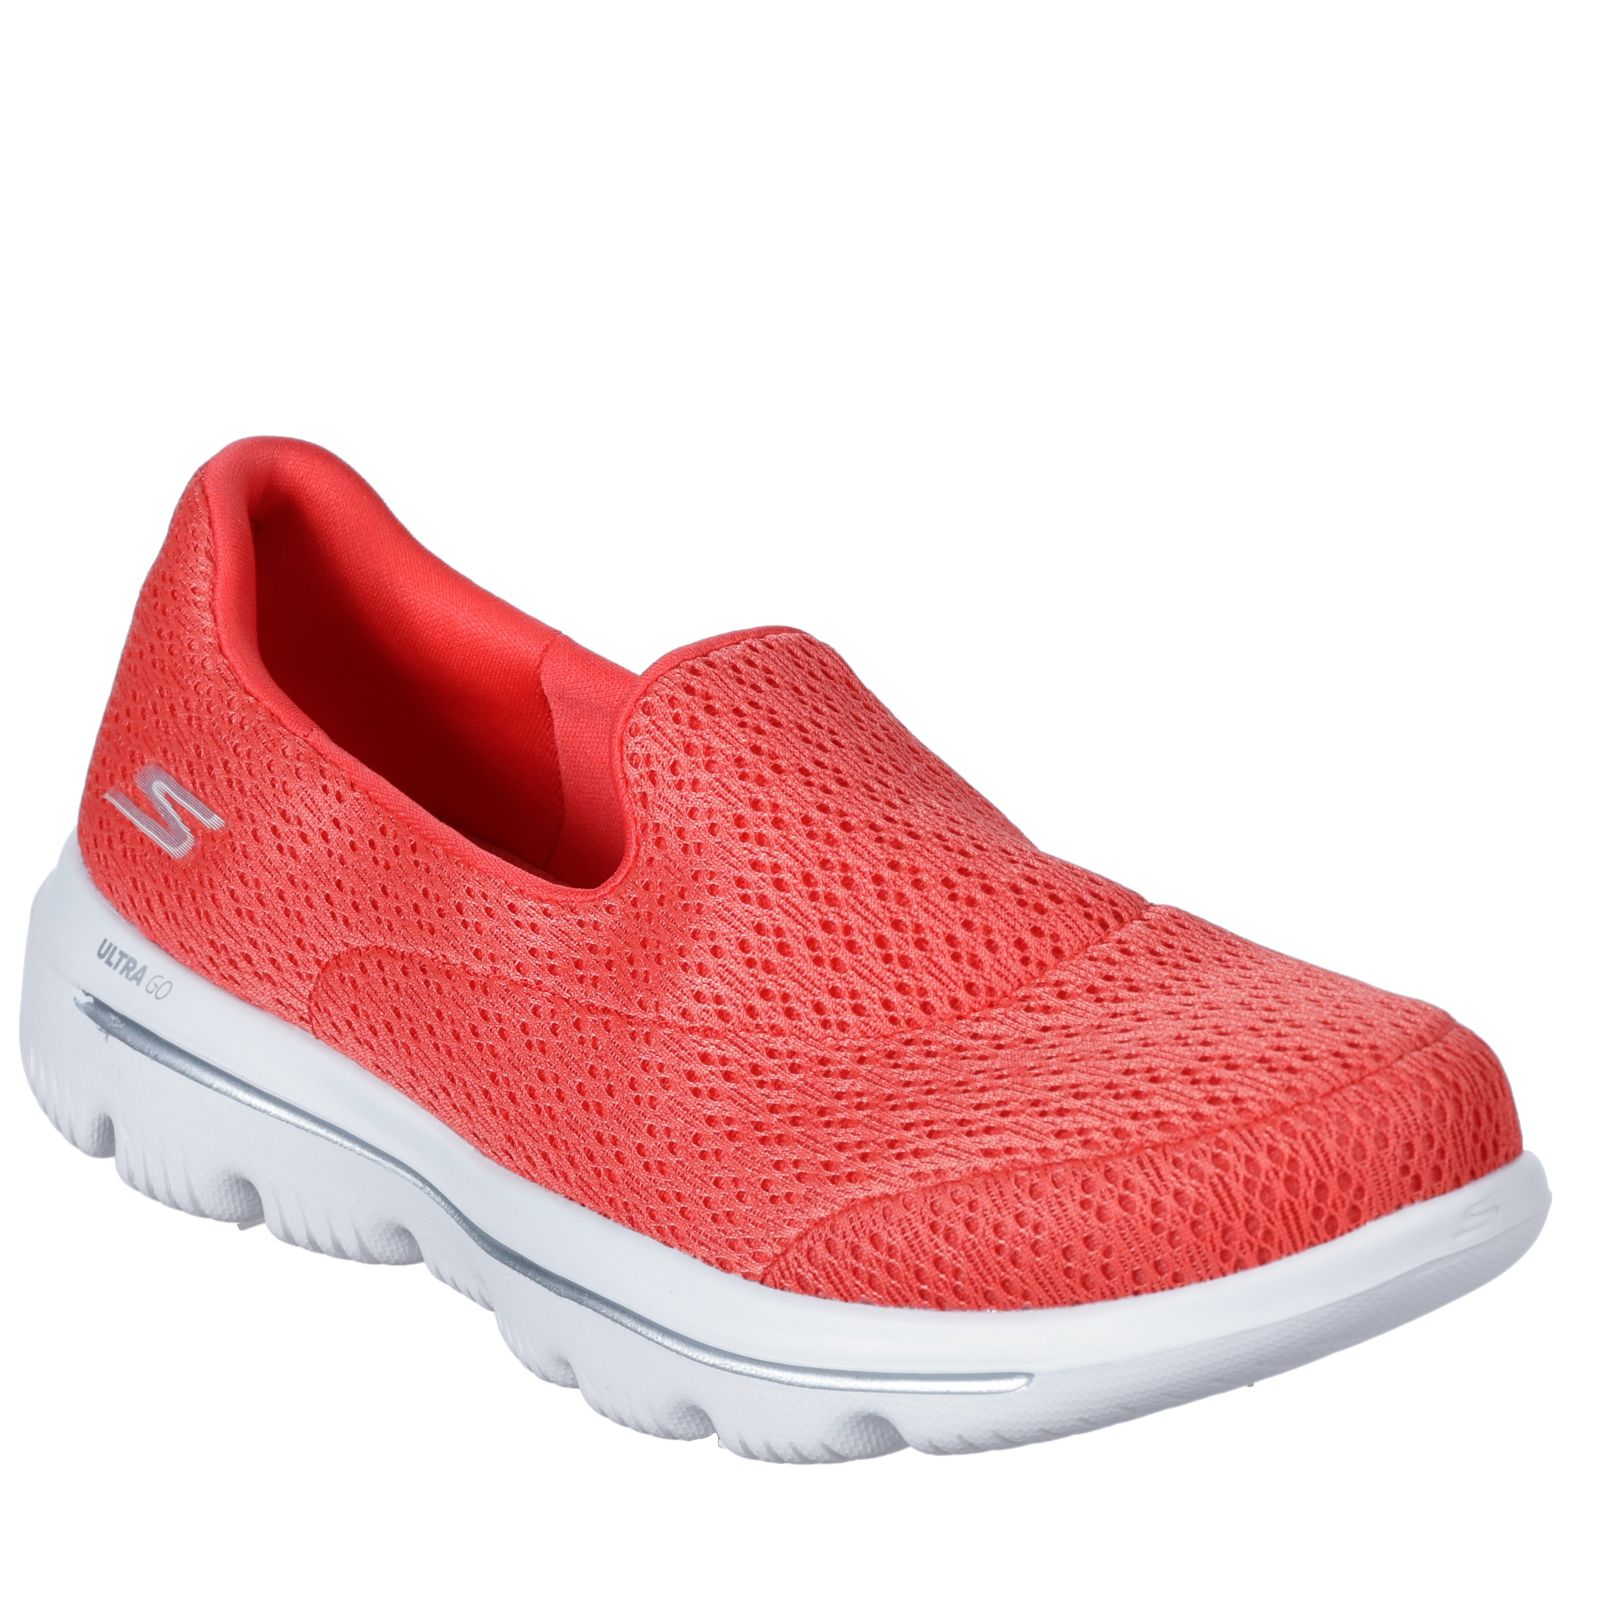 buy online e86e7 934d0 Skechers Go Walk Crochet Slip On Trainer - QVC UK